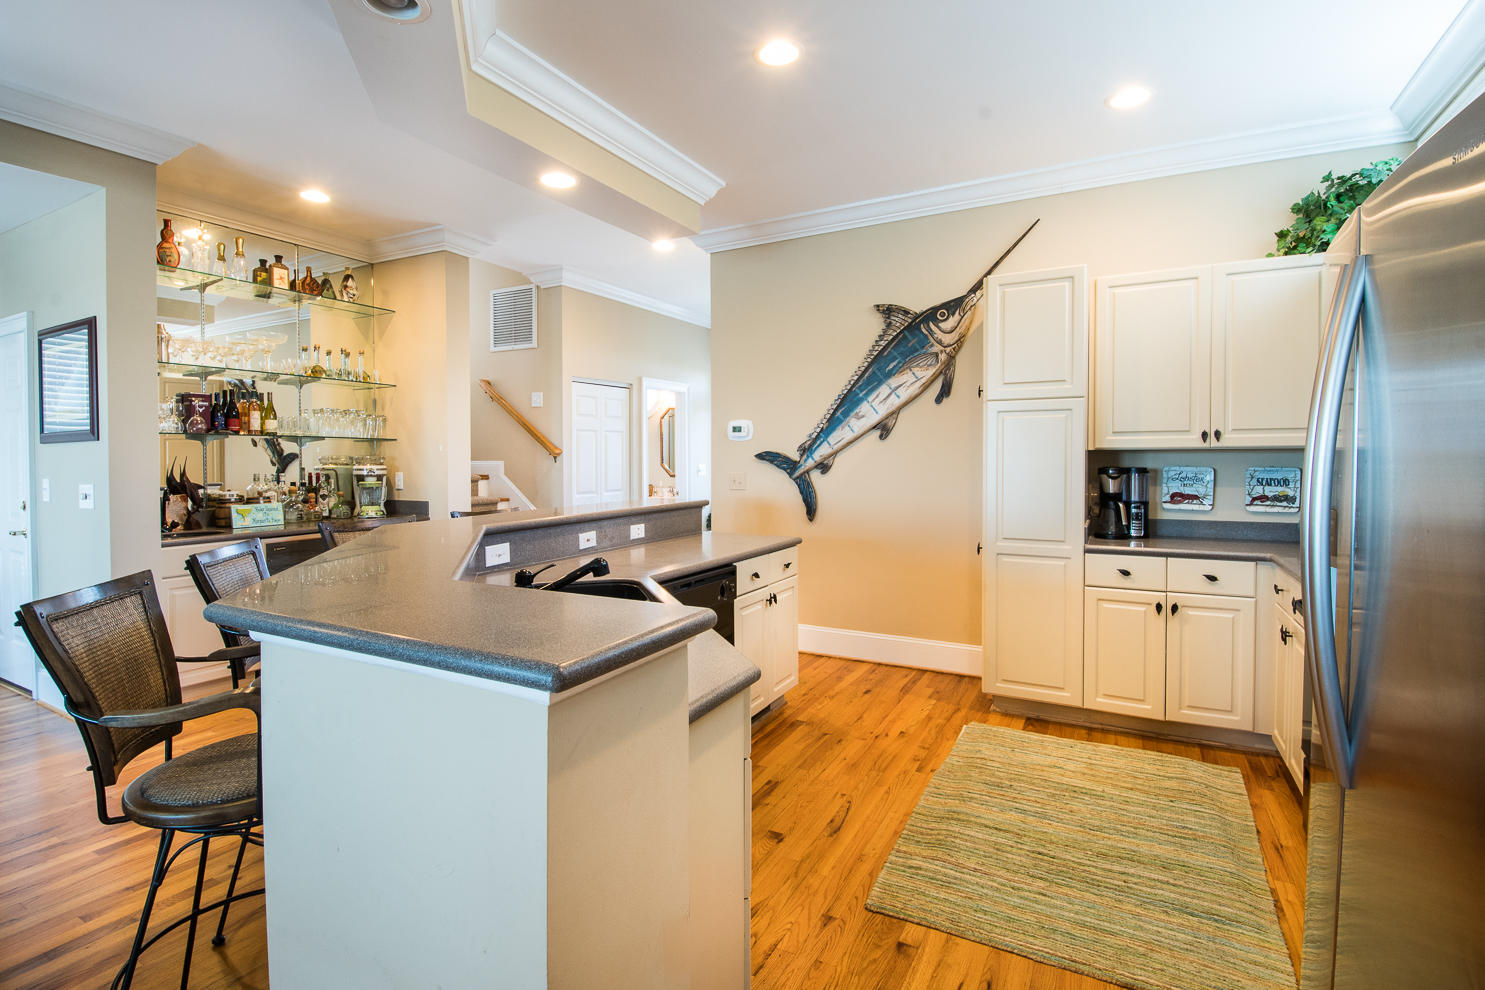 Tolers Cove Homes For Sale - B-4 & B-5 Tolers Cove Marina 70ft + Home, Mount Pleasant, SC - 38